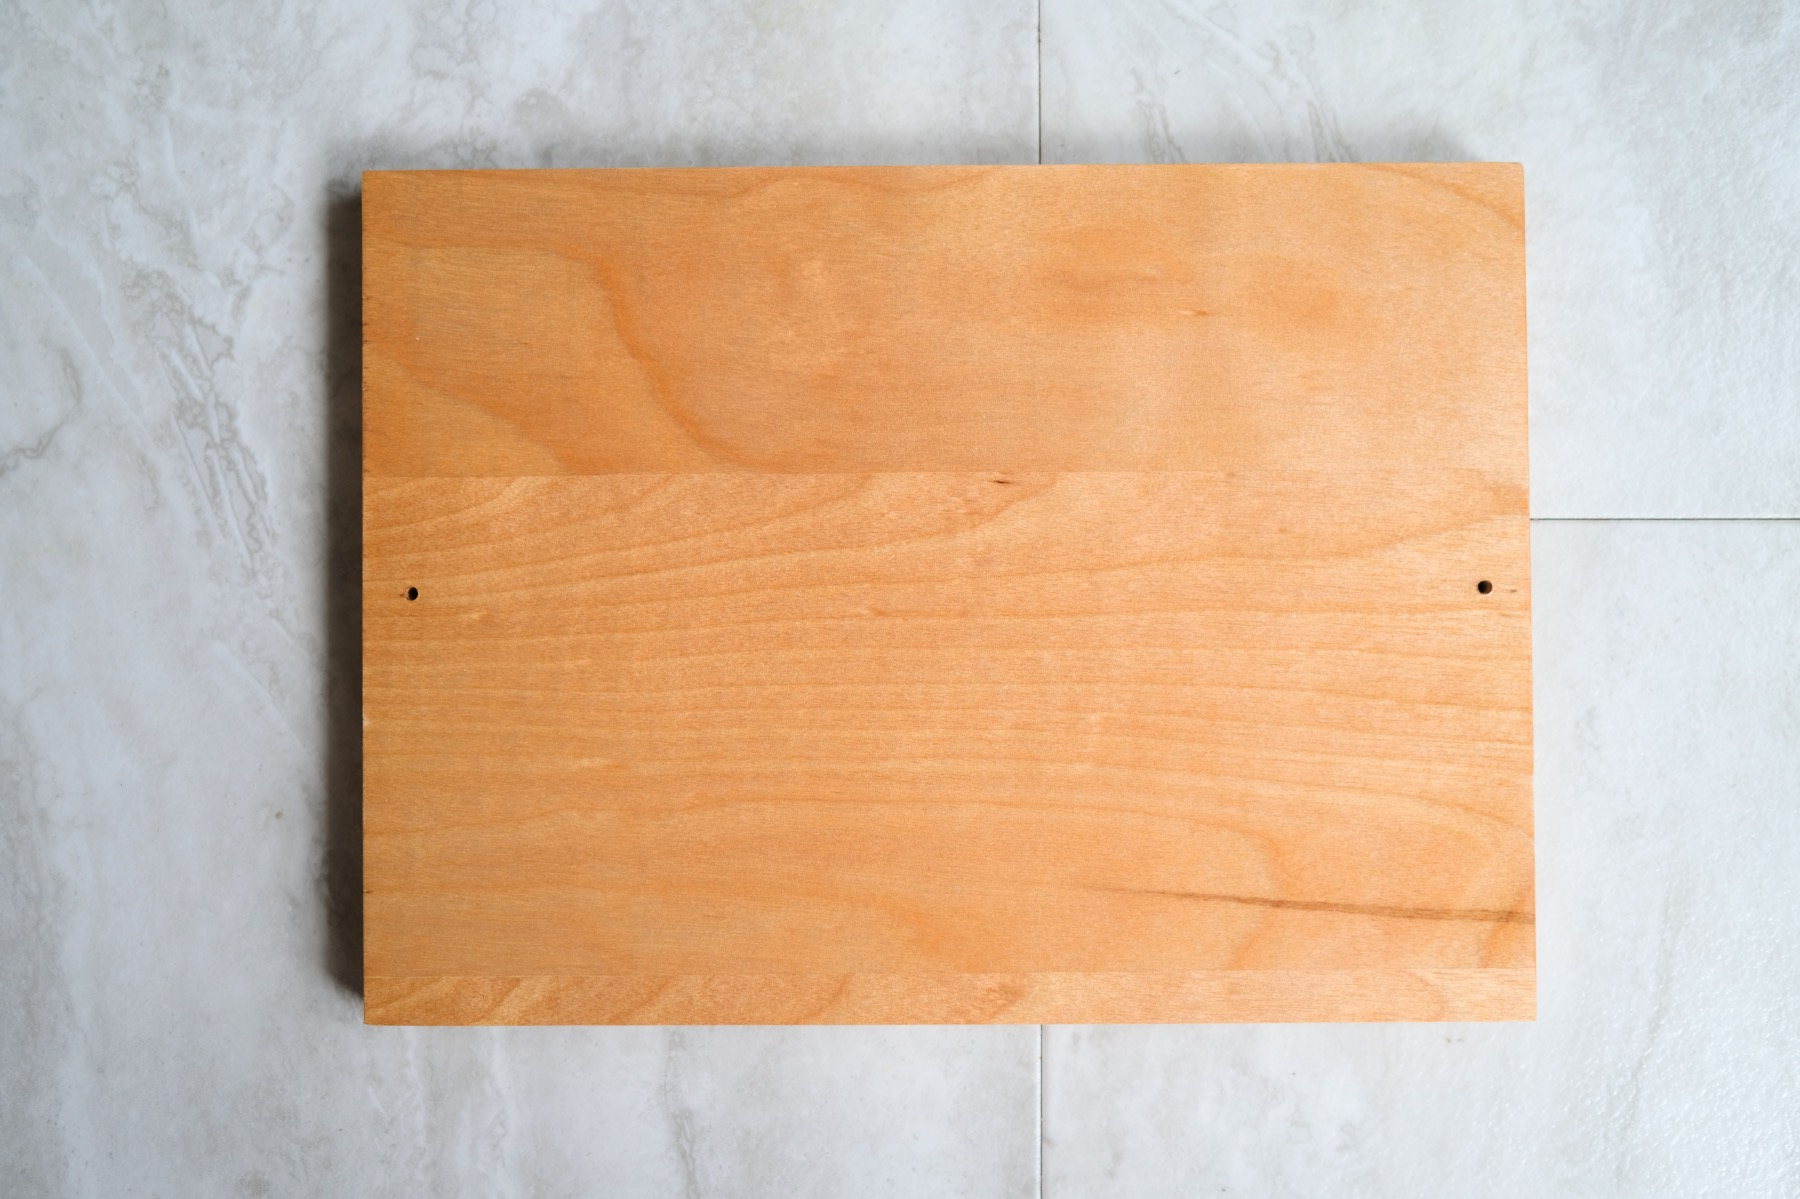 remove the board from the box diy serving tray